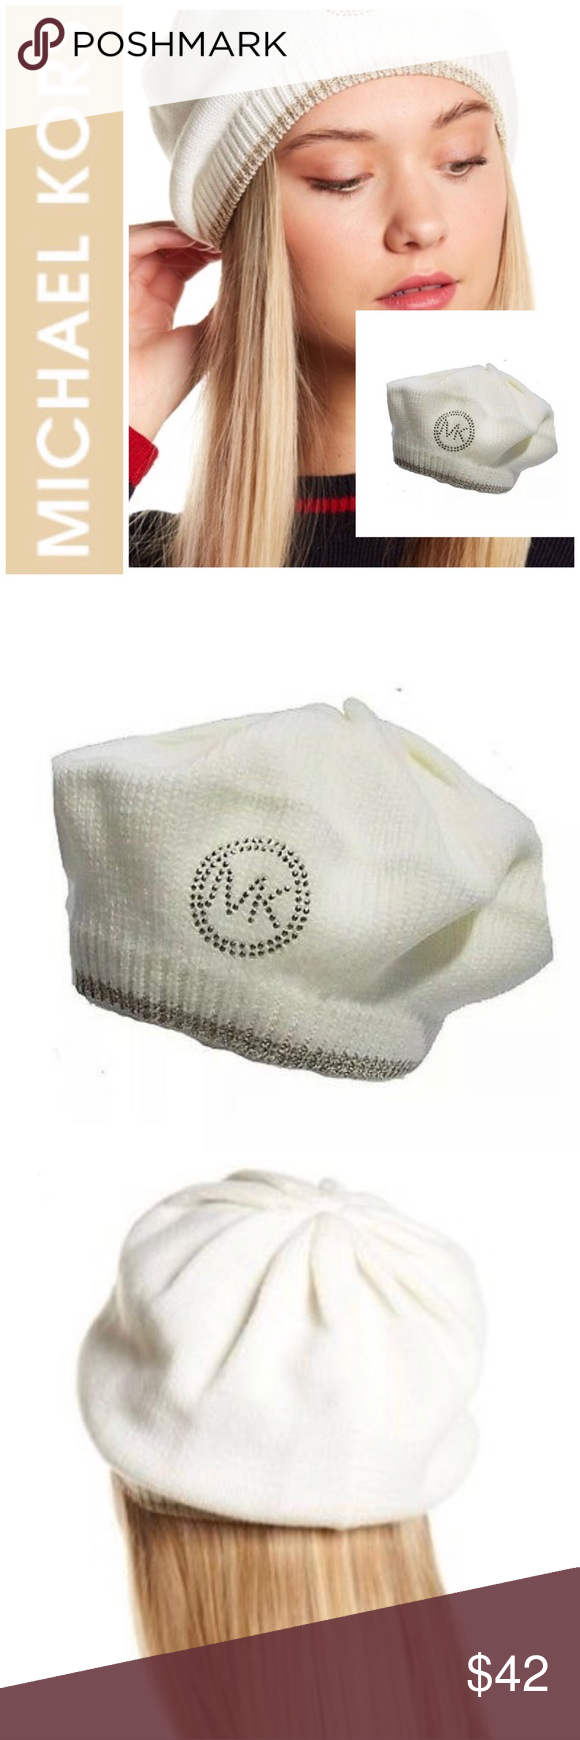 19492462eebd5 Michael Kors Cream Studded Logo Knit Beret Brand New With Tags Beautiful Michael  Kors Cream Color Studded Logo Knit Beret. Add a Flash of Flair to your ...